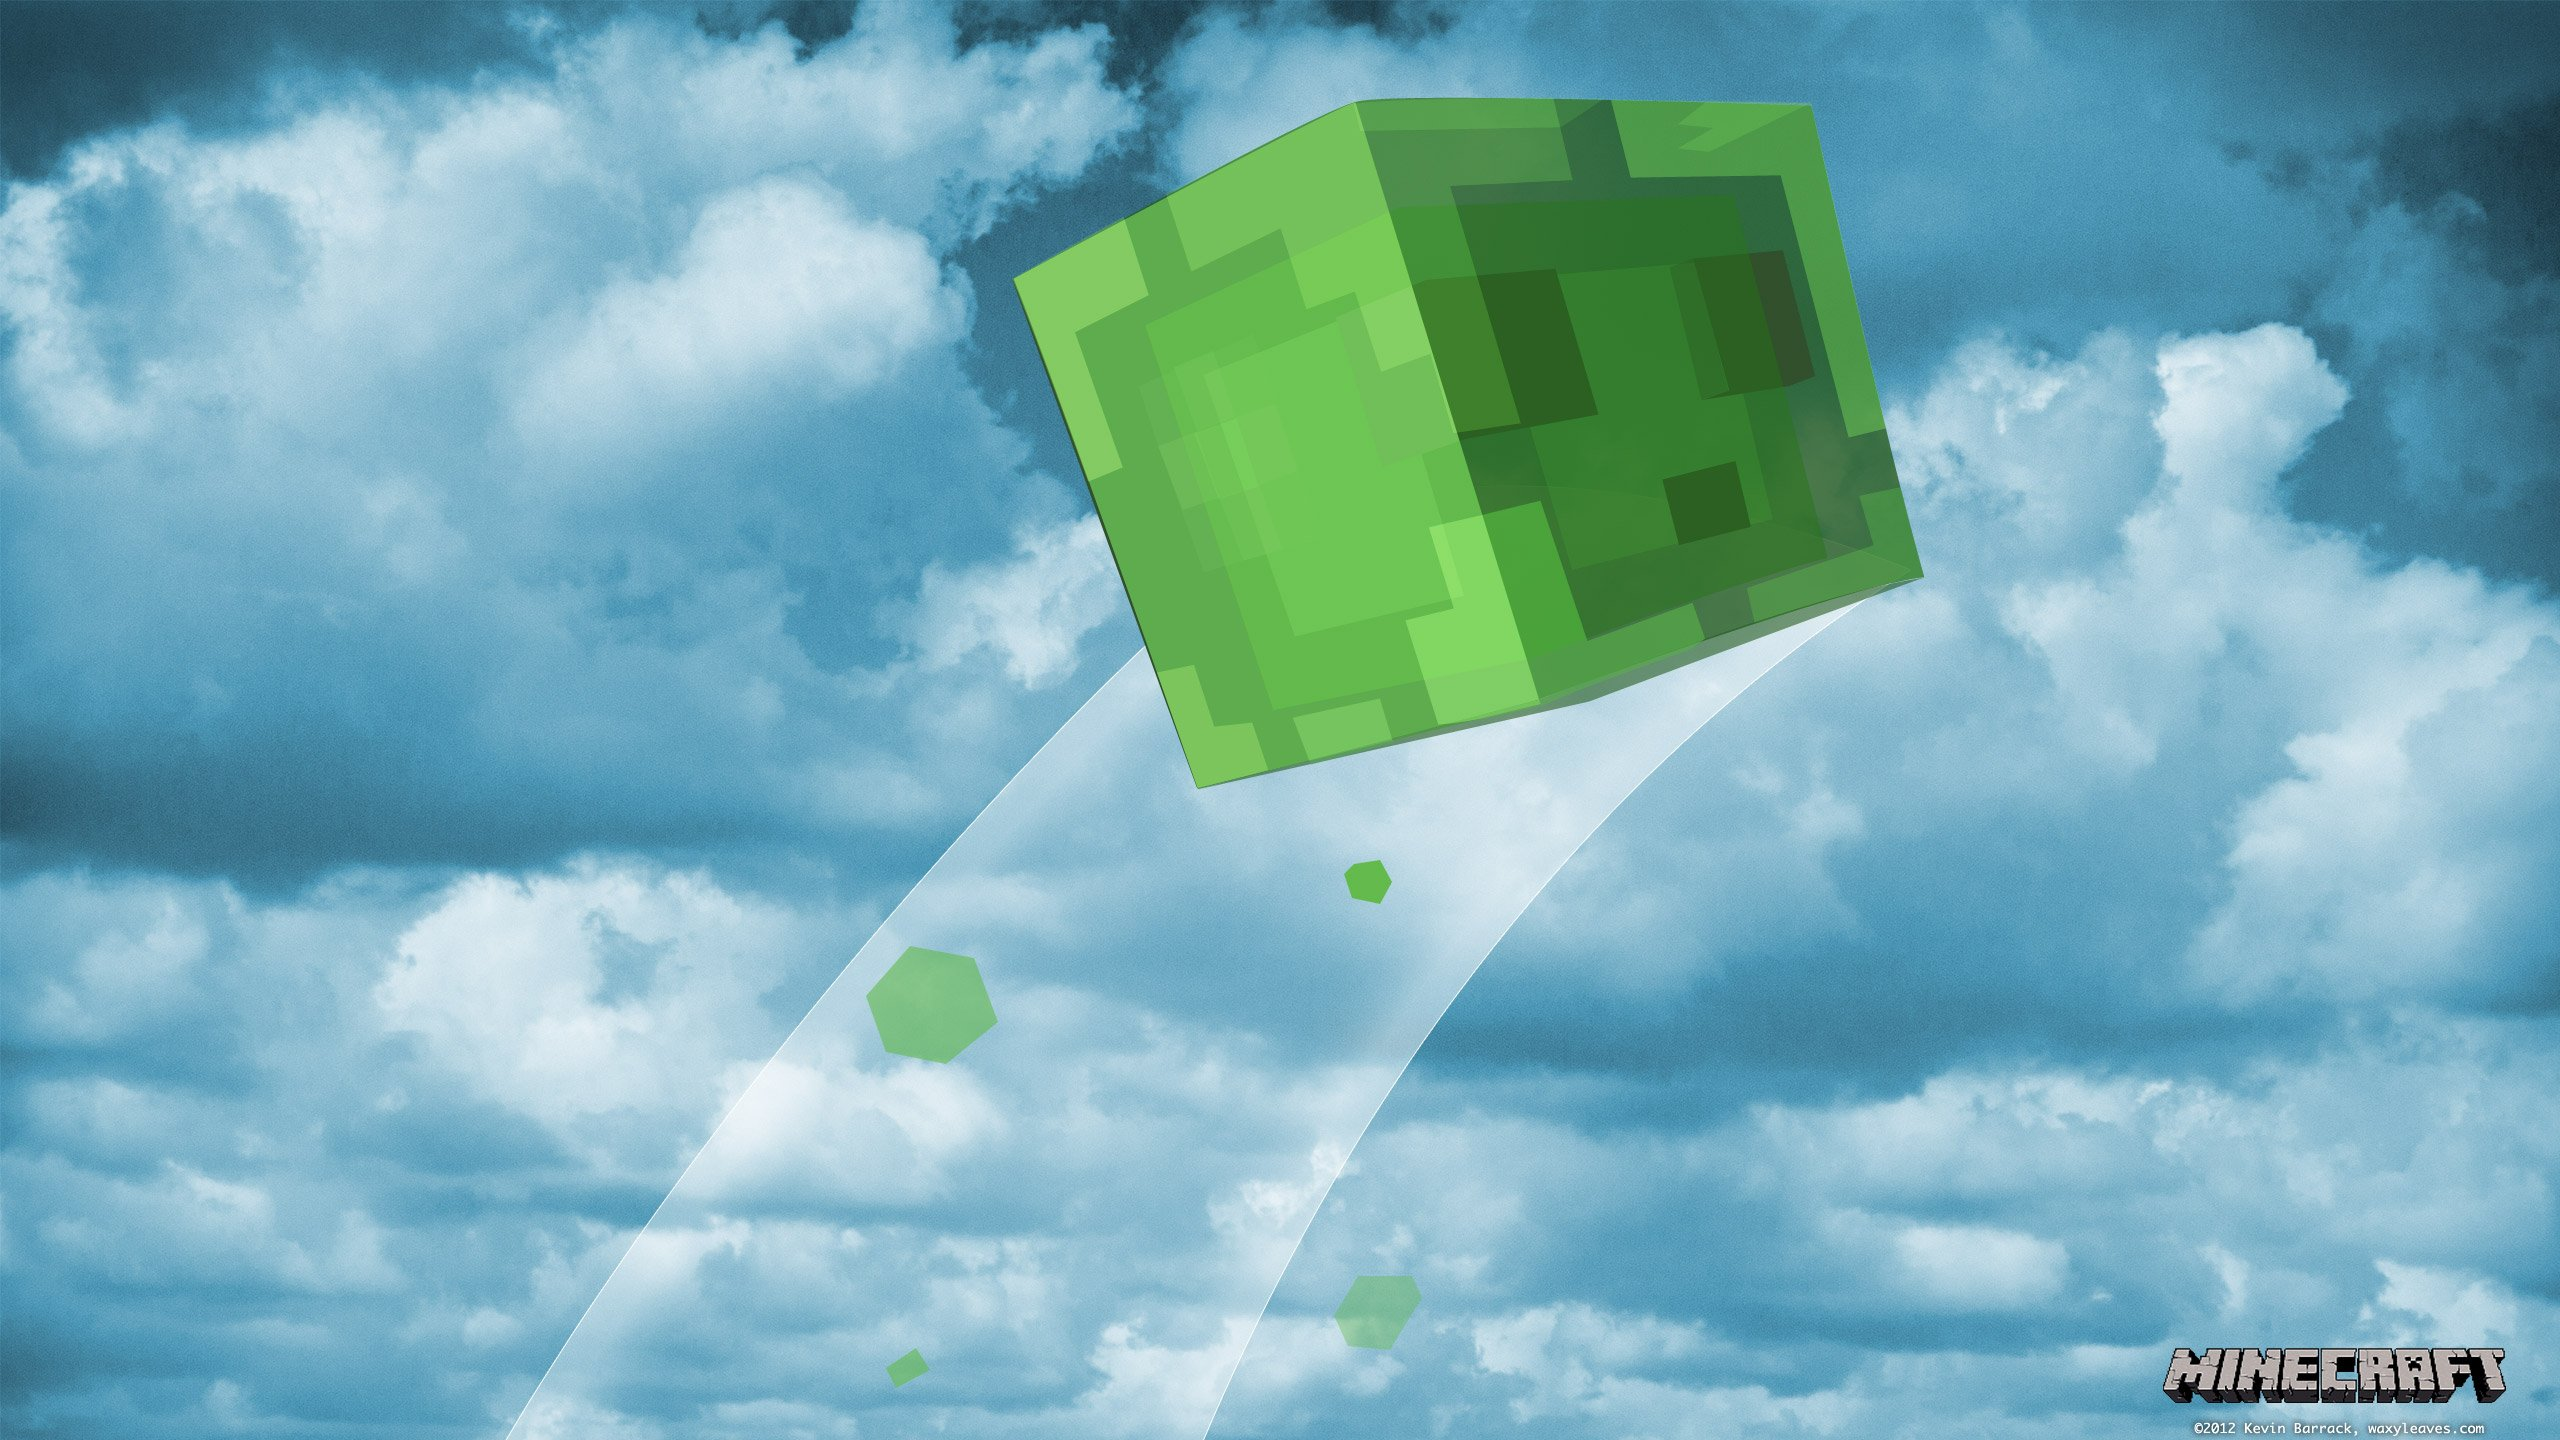 48 Minecraft Wallpaper 2560 X 1440 On Wallpapersafari